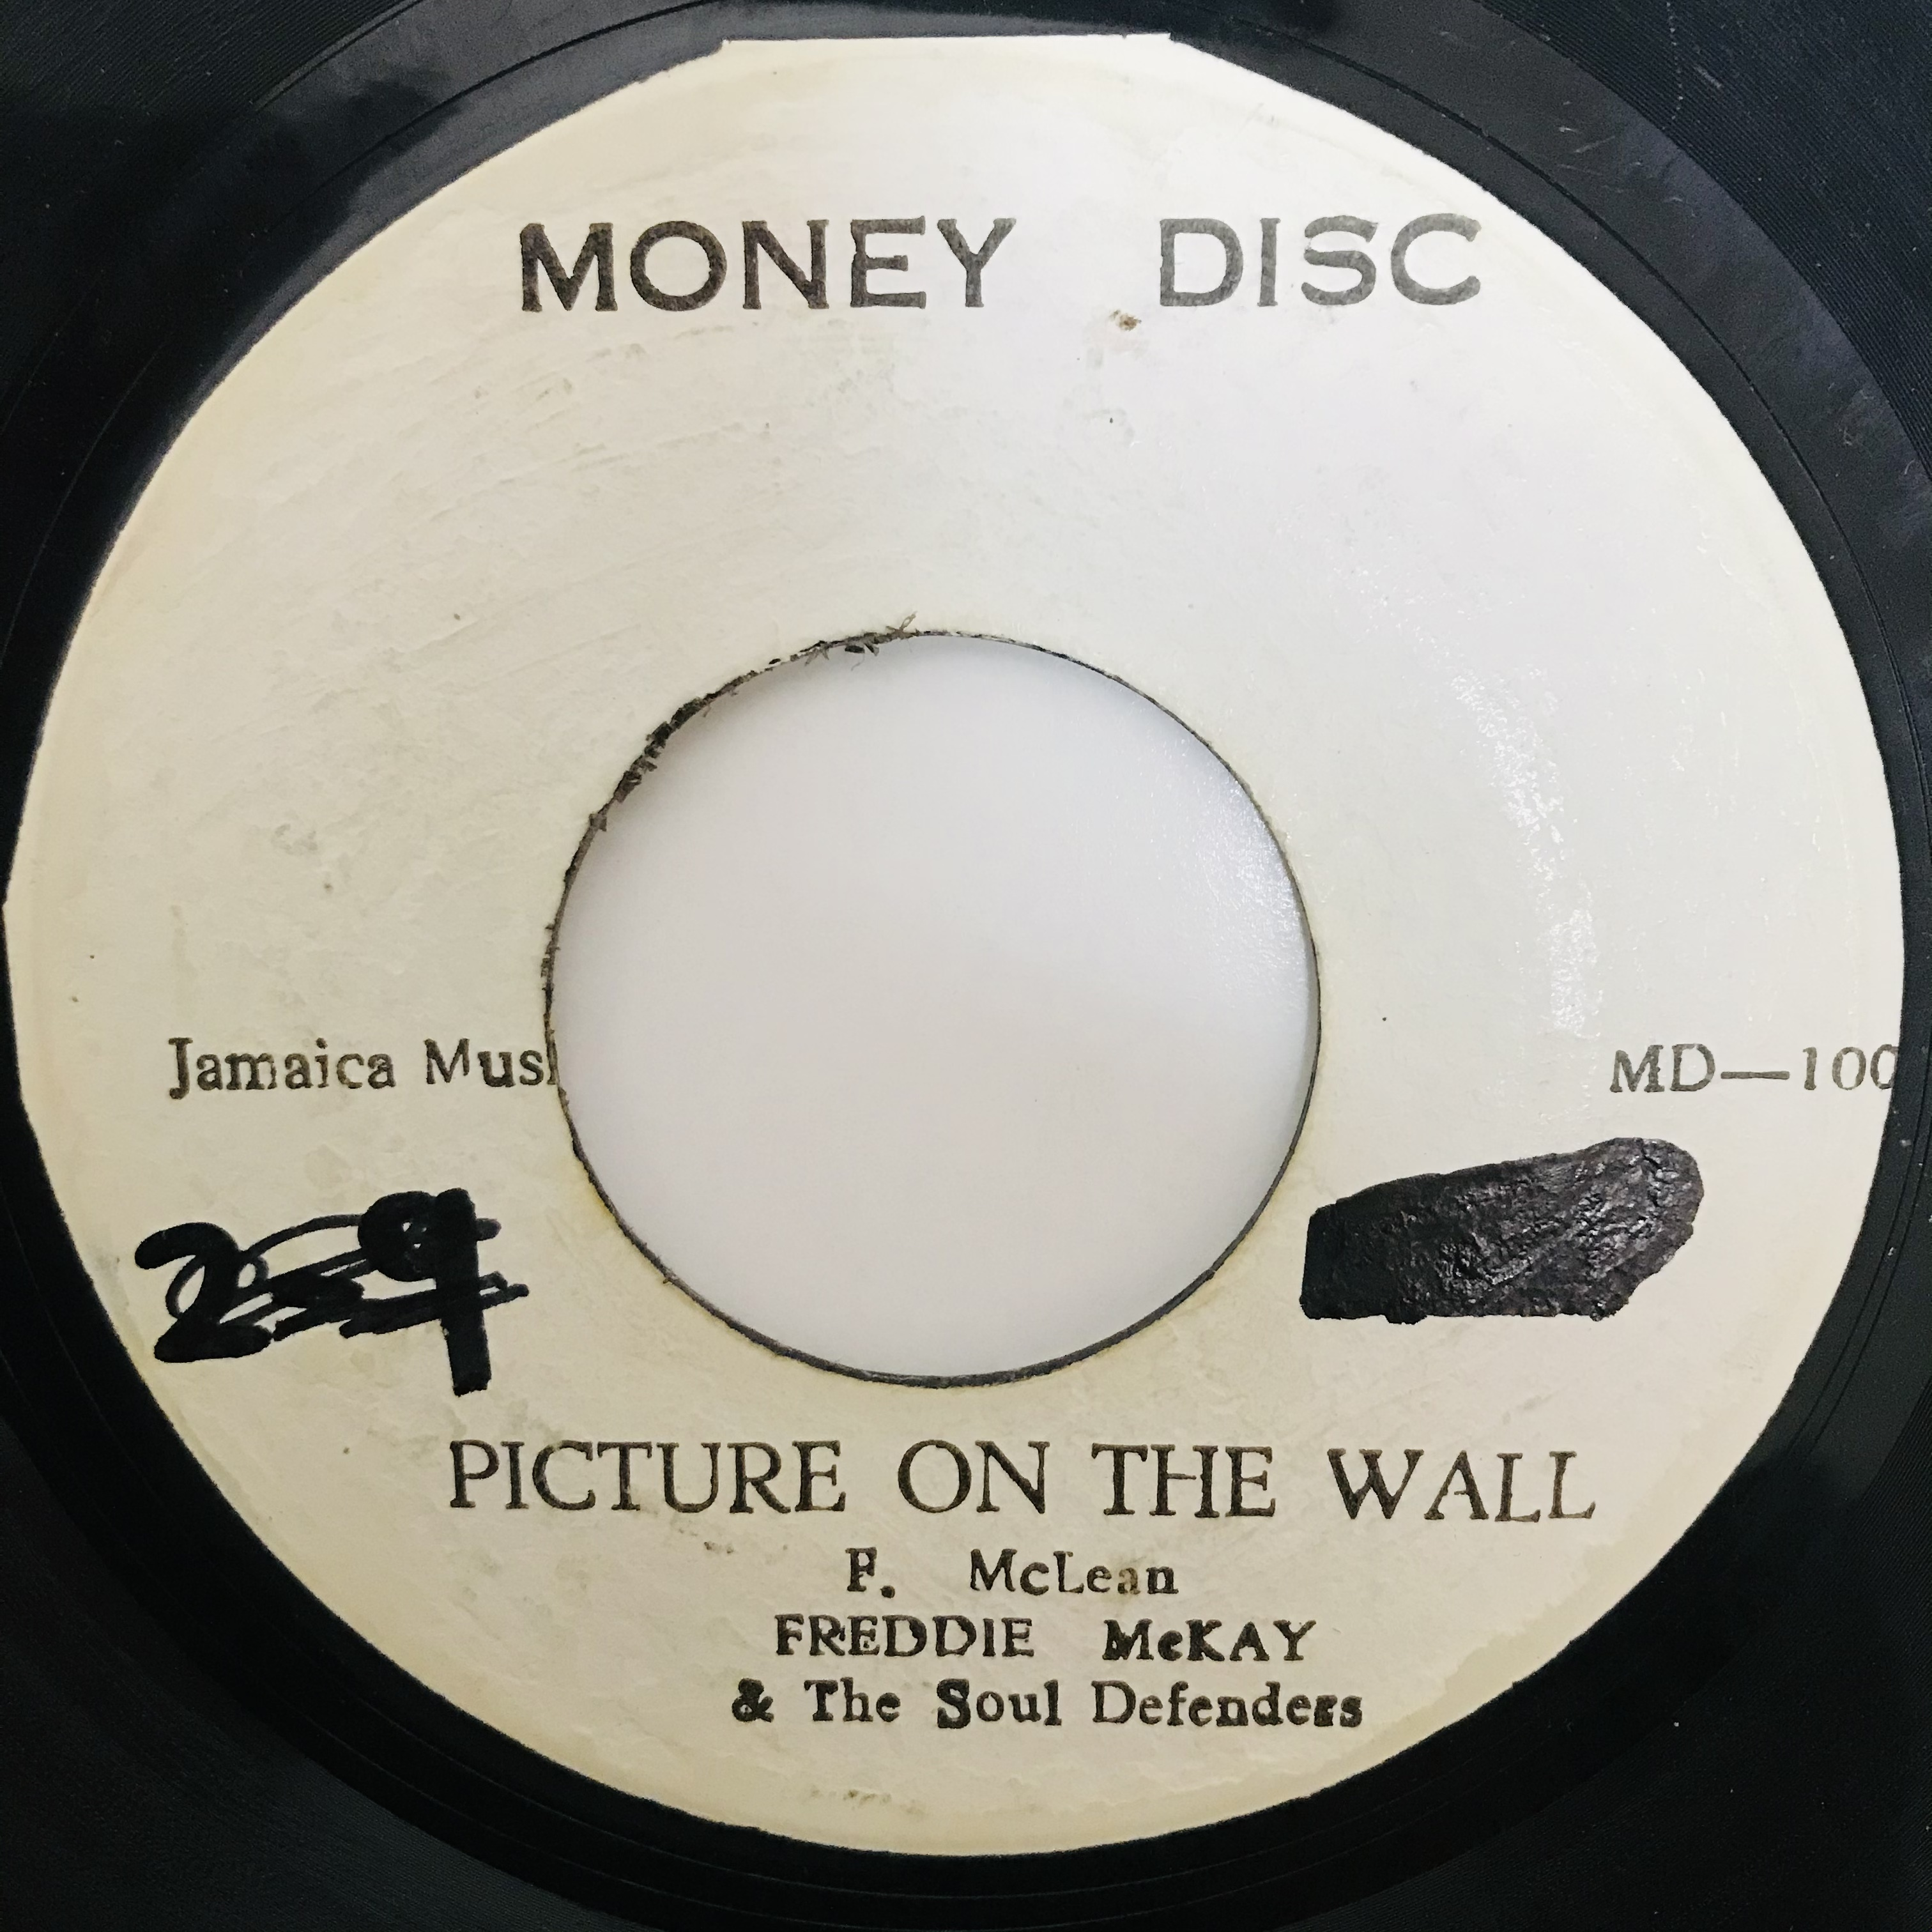 Freddie Mckay & The Soul Defenders - Picture On The Wall 【7-10937】